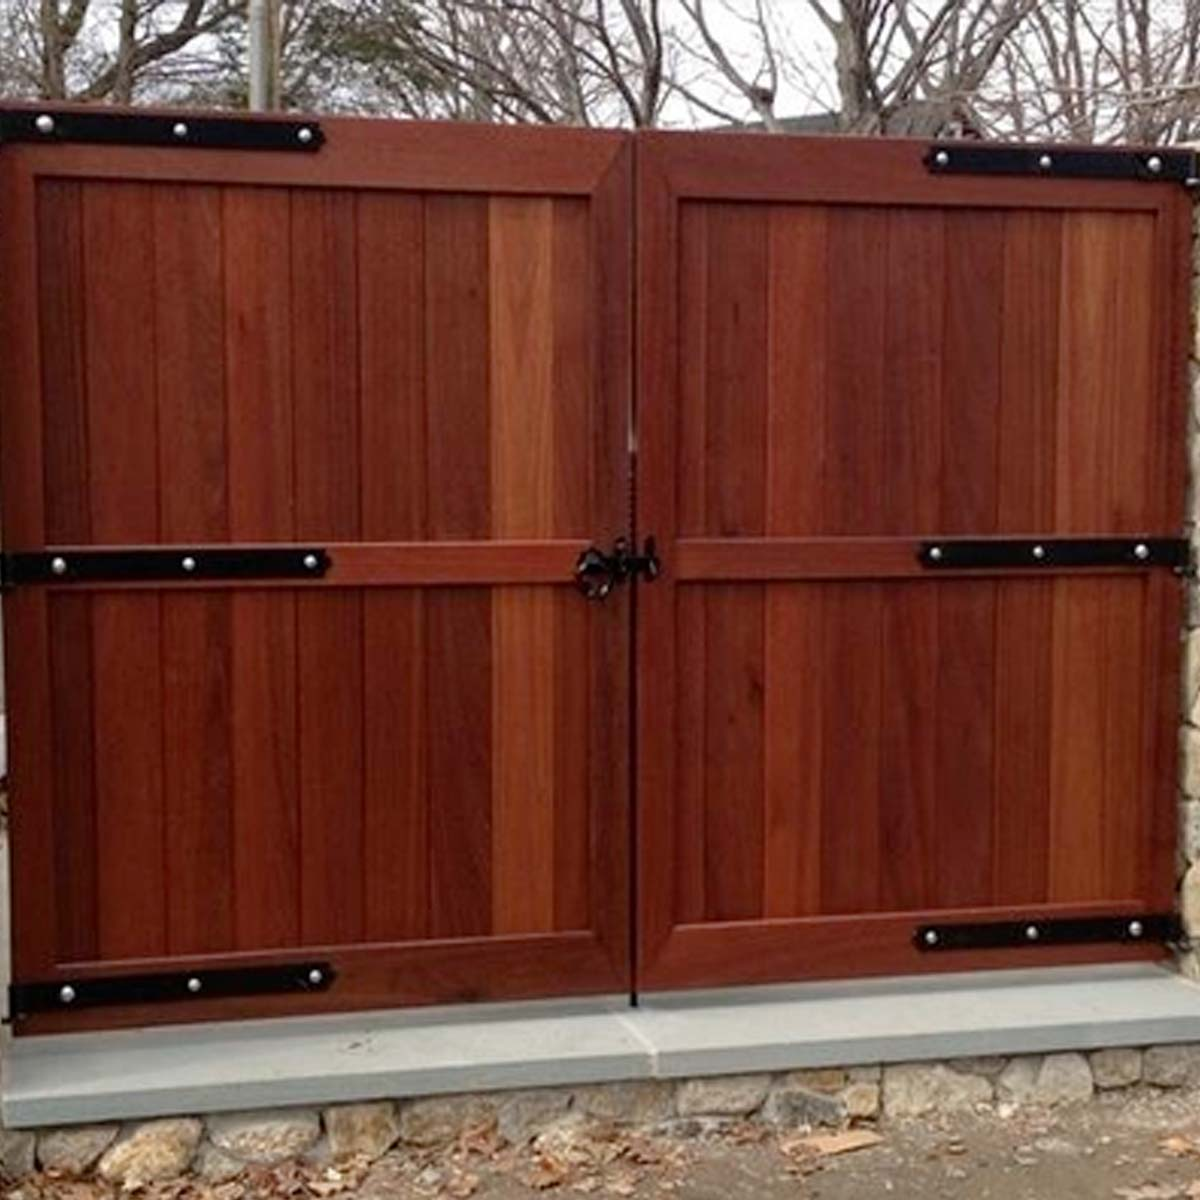 https://www.speedyvinylfencing.com/wp-content/uploads/2019/12/SVF-Services-Gates.jpg